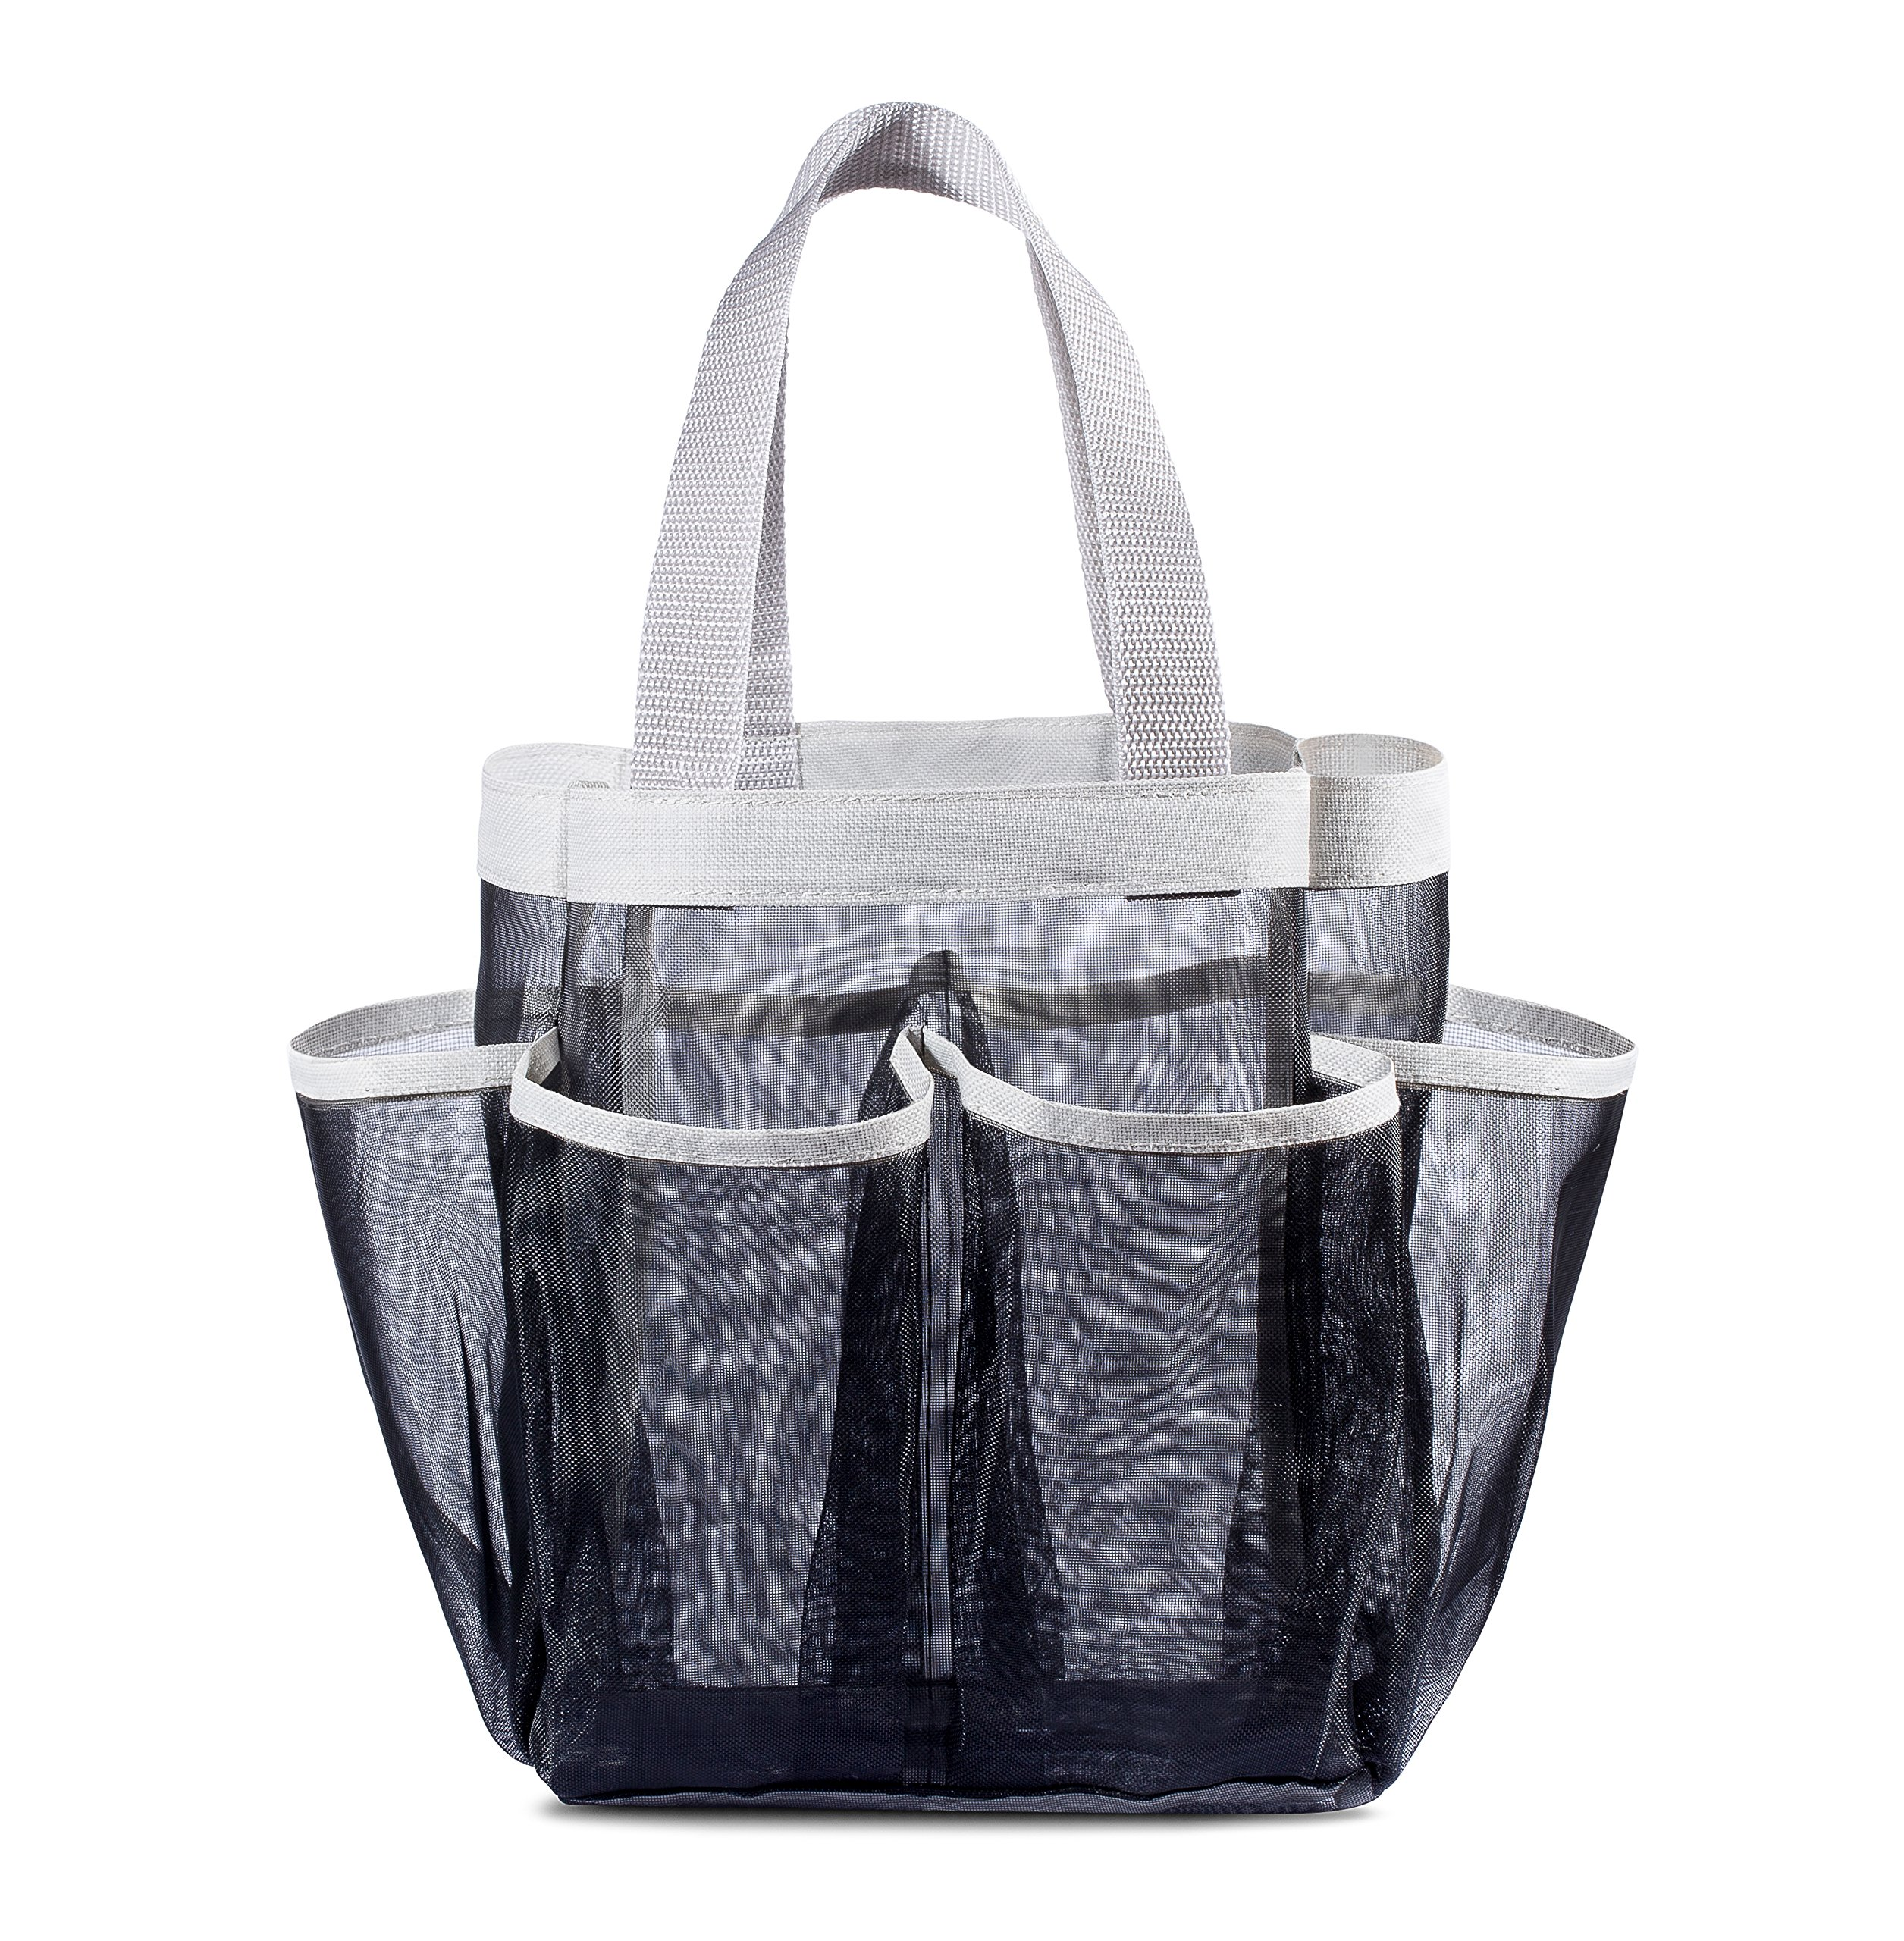 7 Pocket Shower Caddy Tote